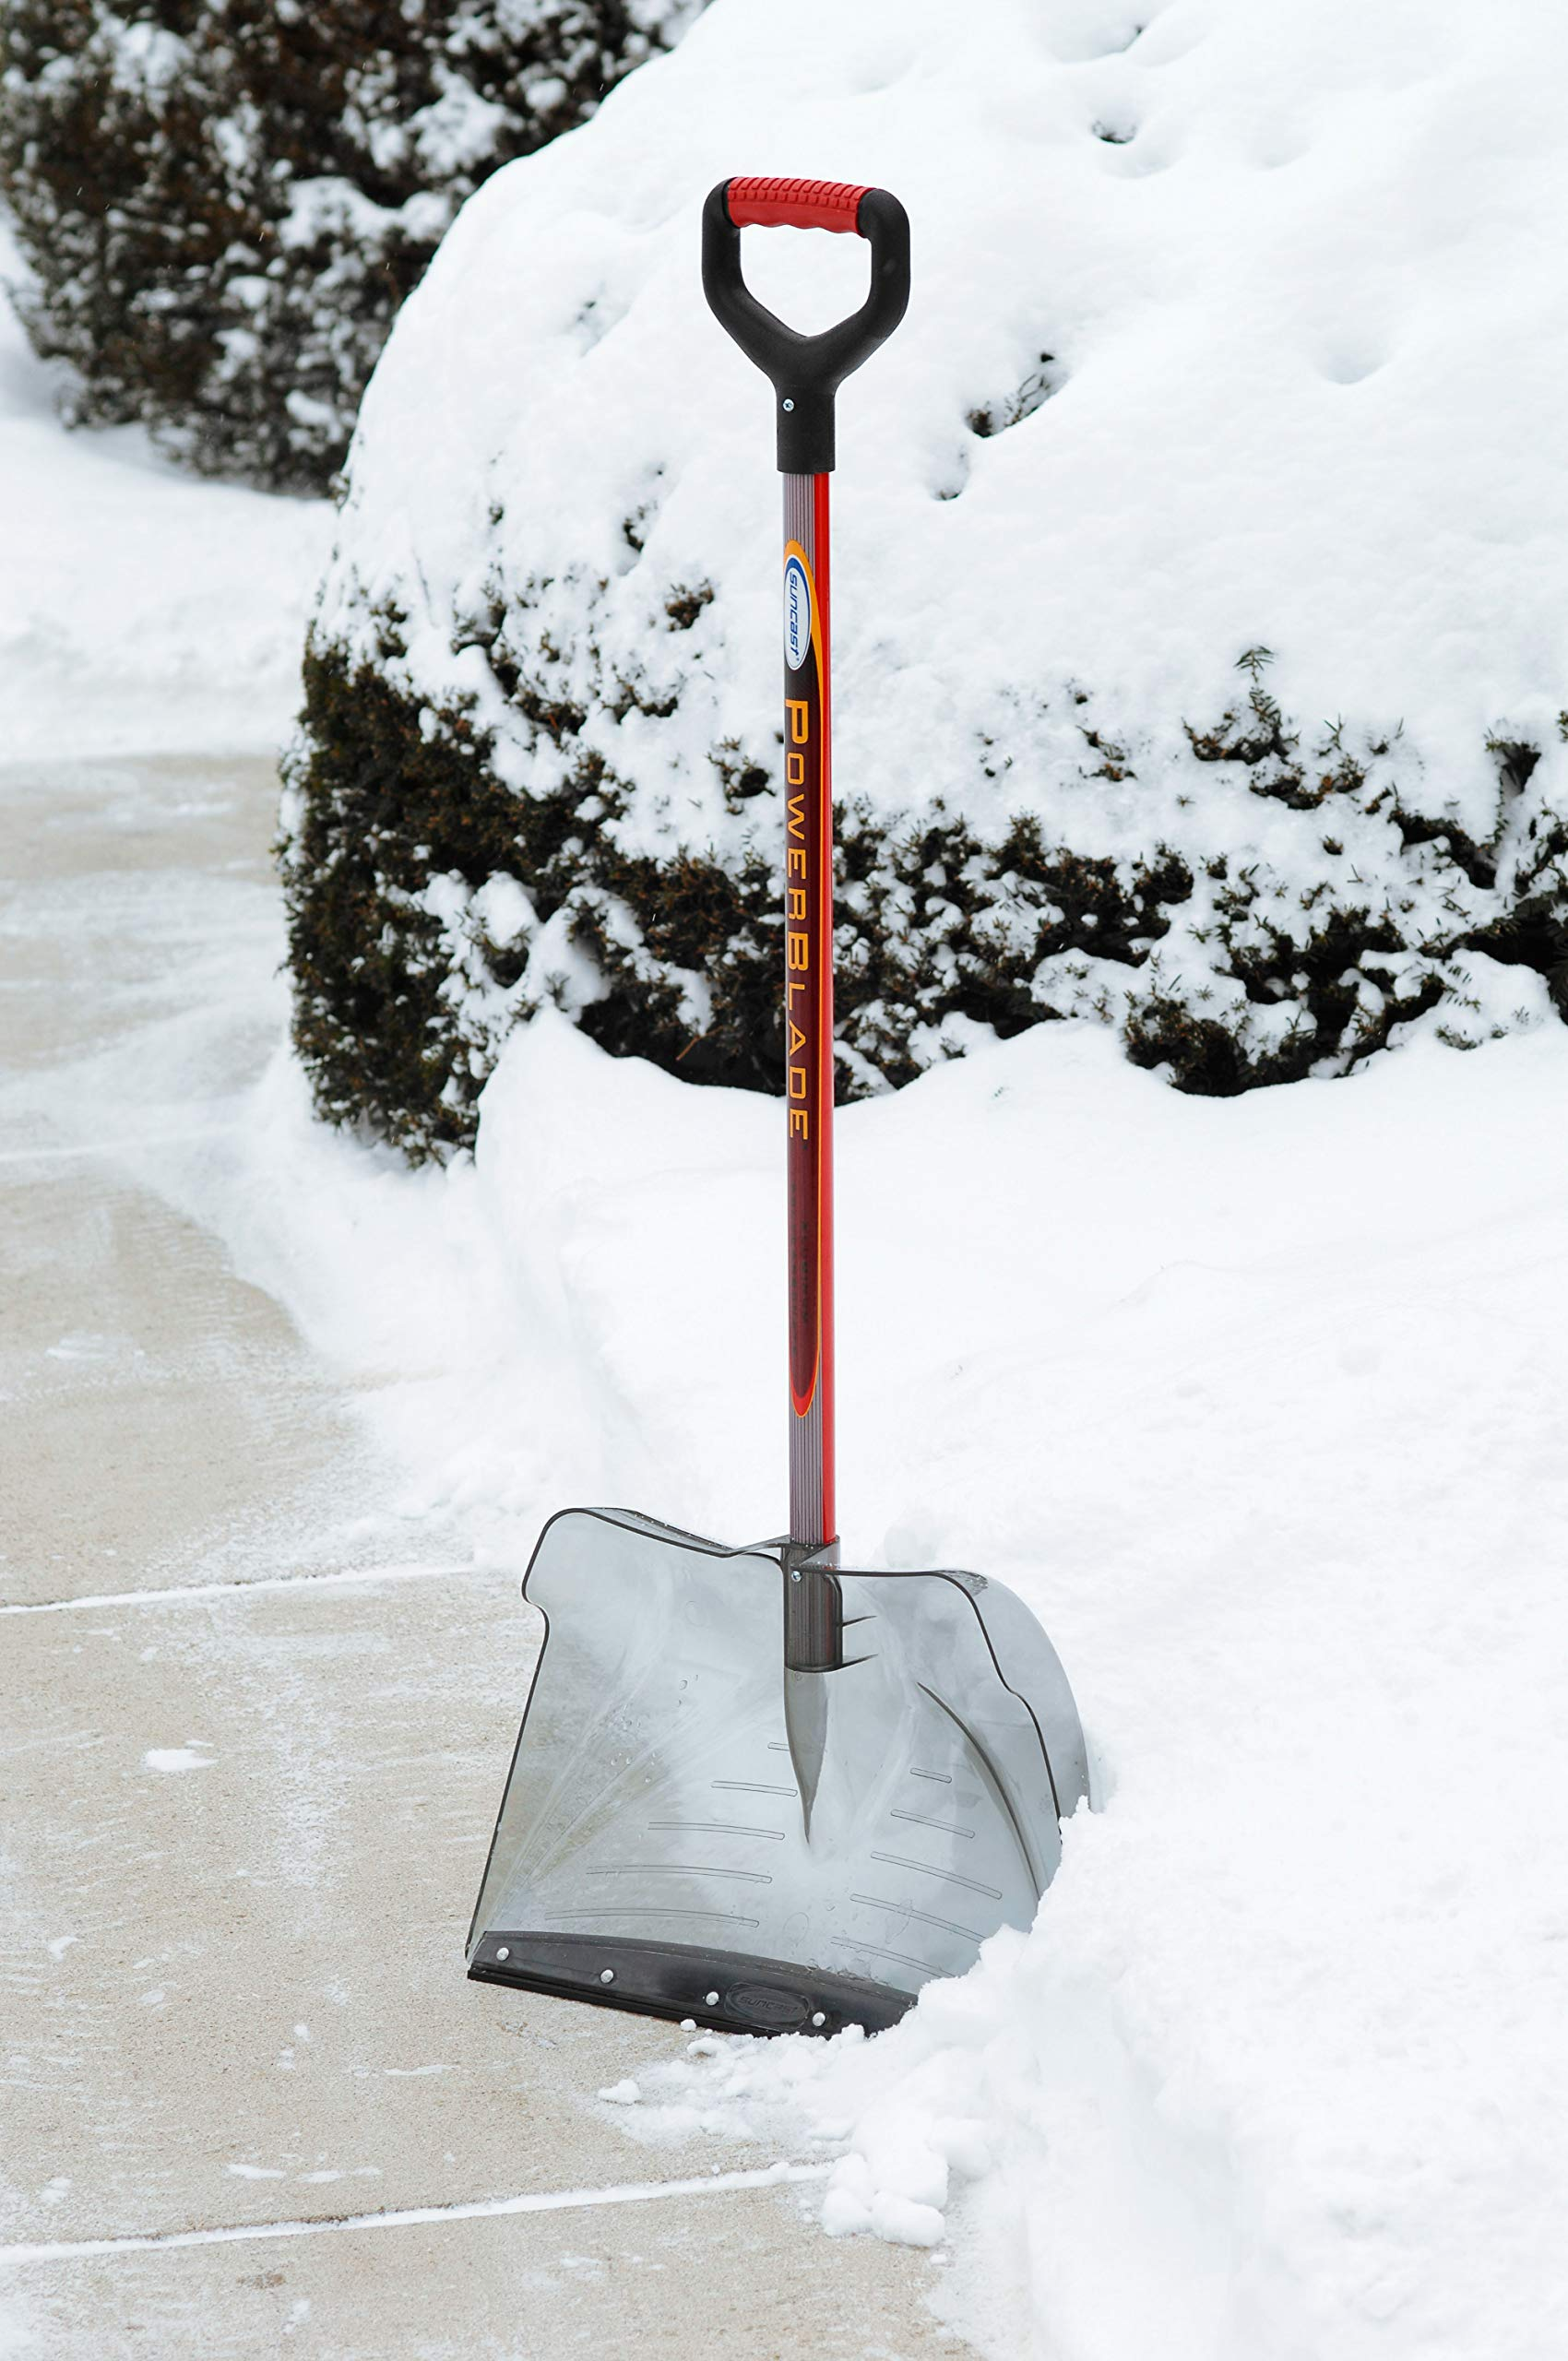 Suncast SCP3500 20-Inch Snow Shovel/Pusher Combo Powerblade with Shatter Resistant Polycarbonate Blade with D-Grip Handle And Wear Strip by Suncast